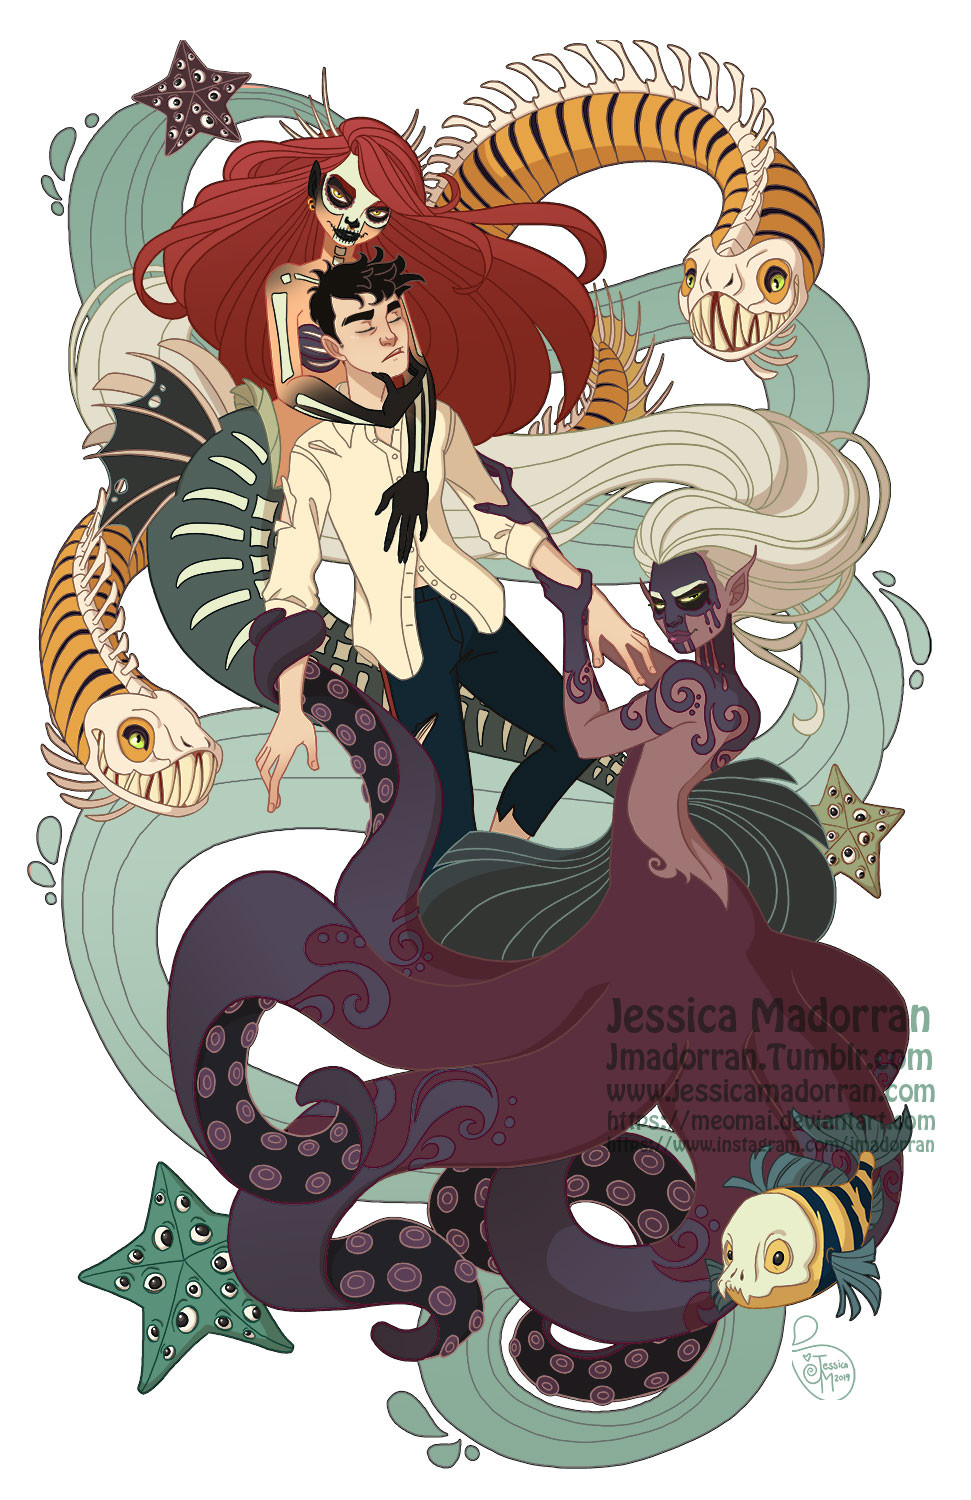 Jessica madorran character design little mermaid dayofthedex illustration 2019 artstation